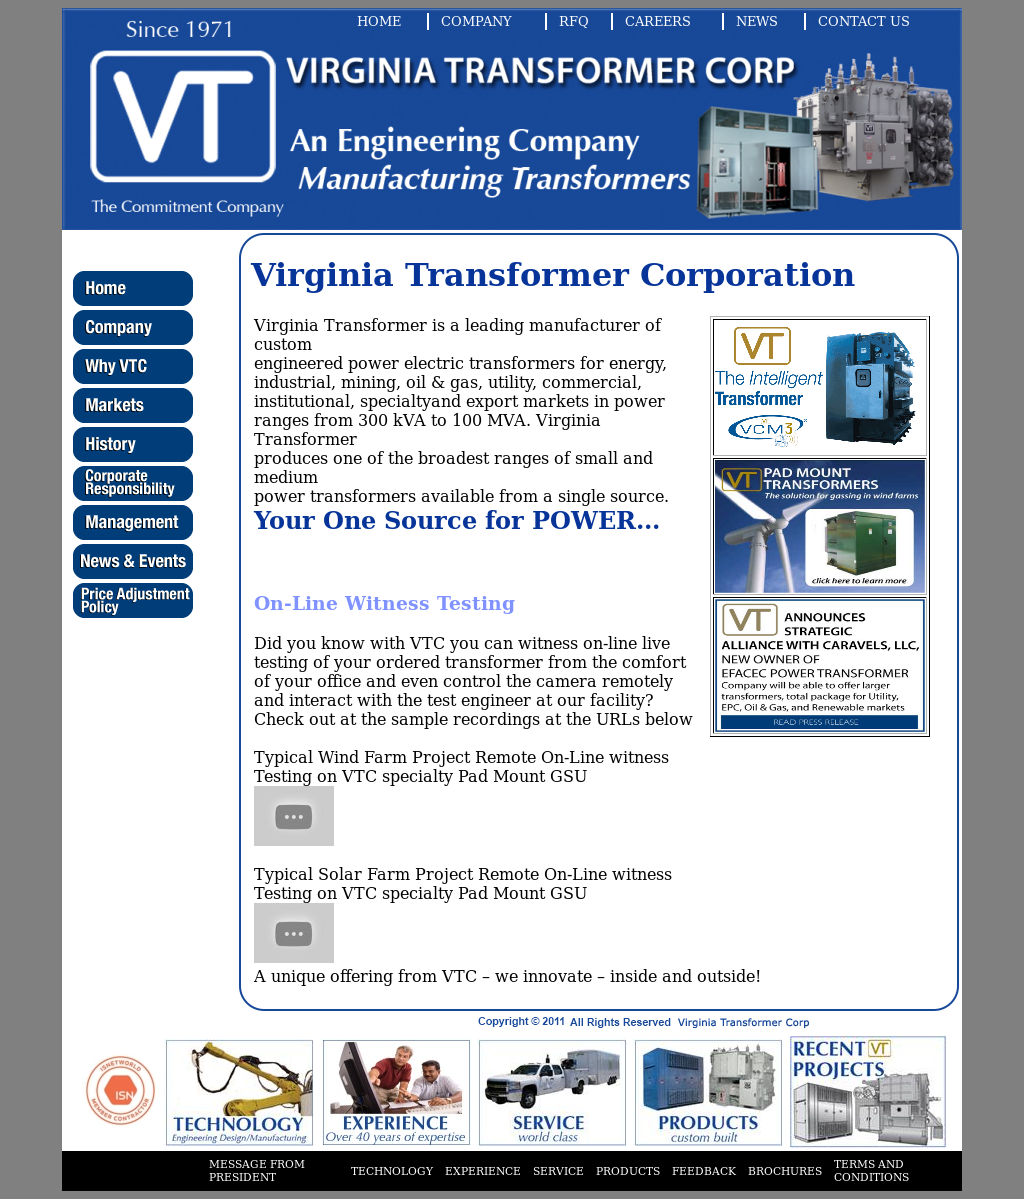 Virginia Transformer Competitors, Revenue and Employees